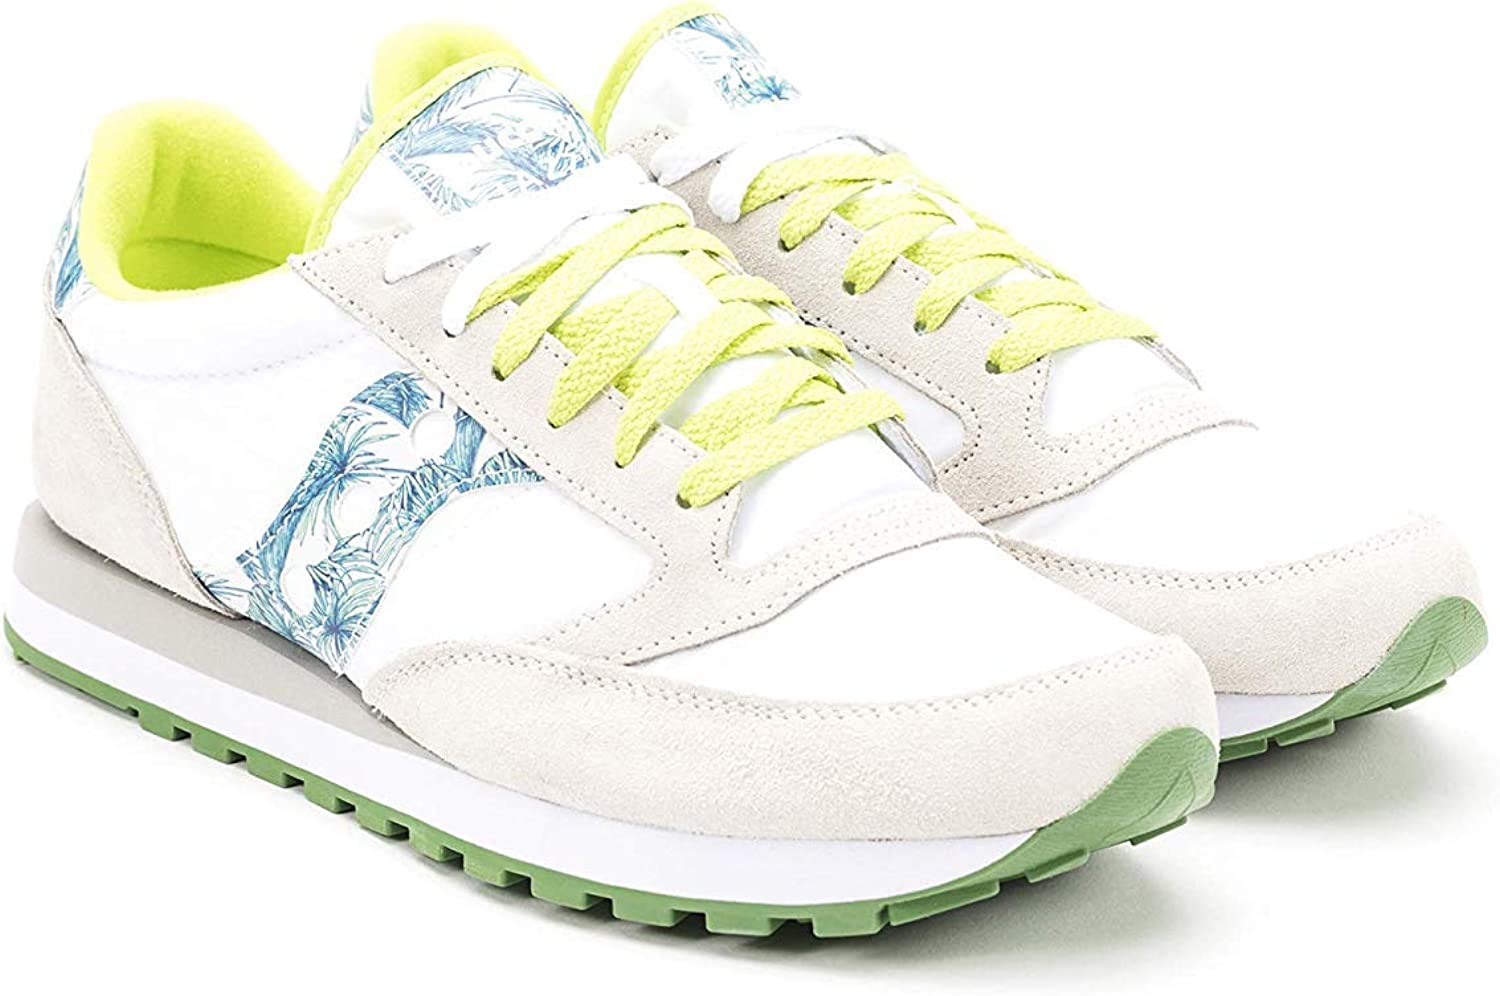 Wolverine World Wide , Damen Turnschuhe Wei Bianco